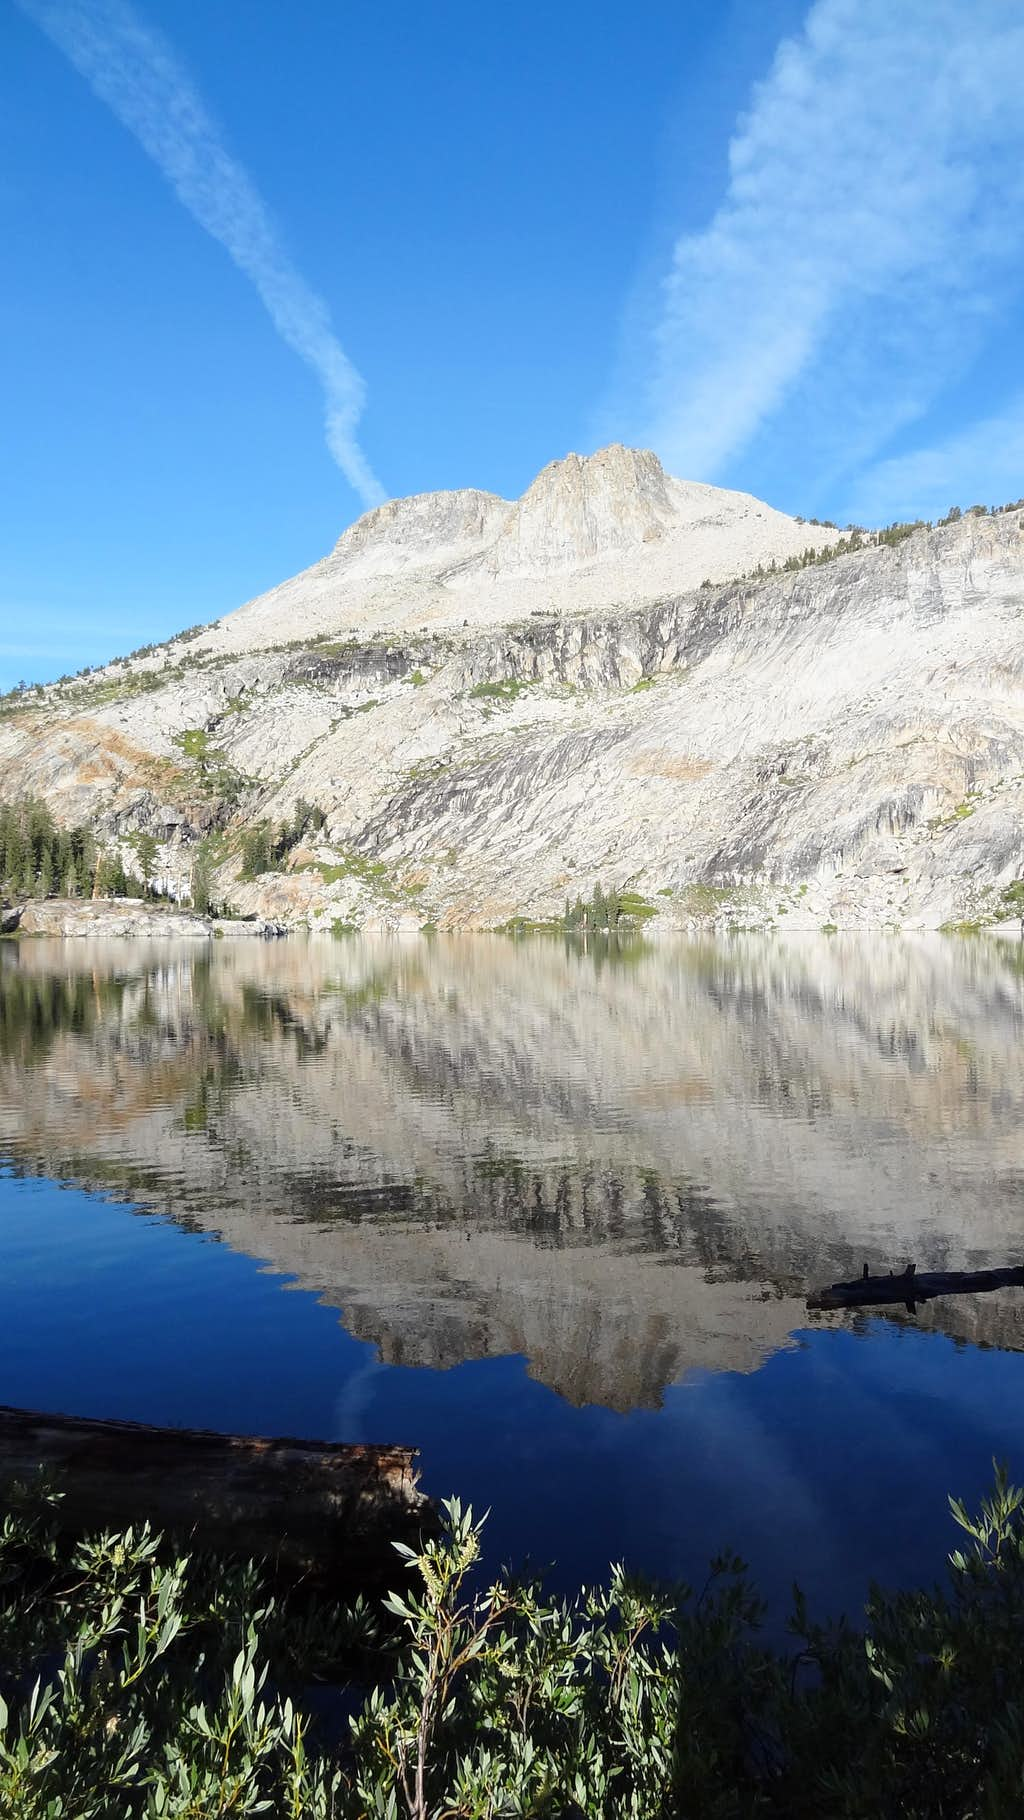 Mount Hoffmann and May Lake